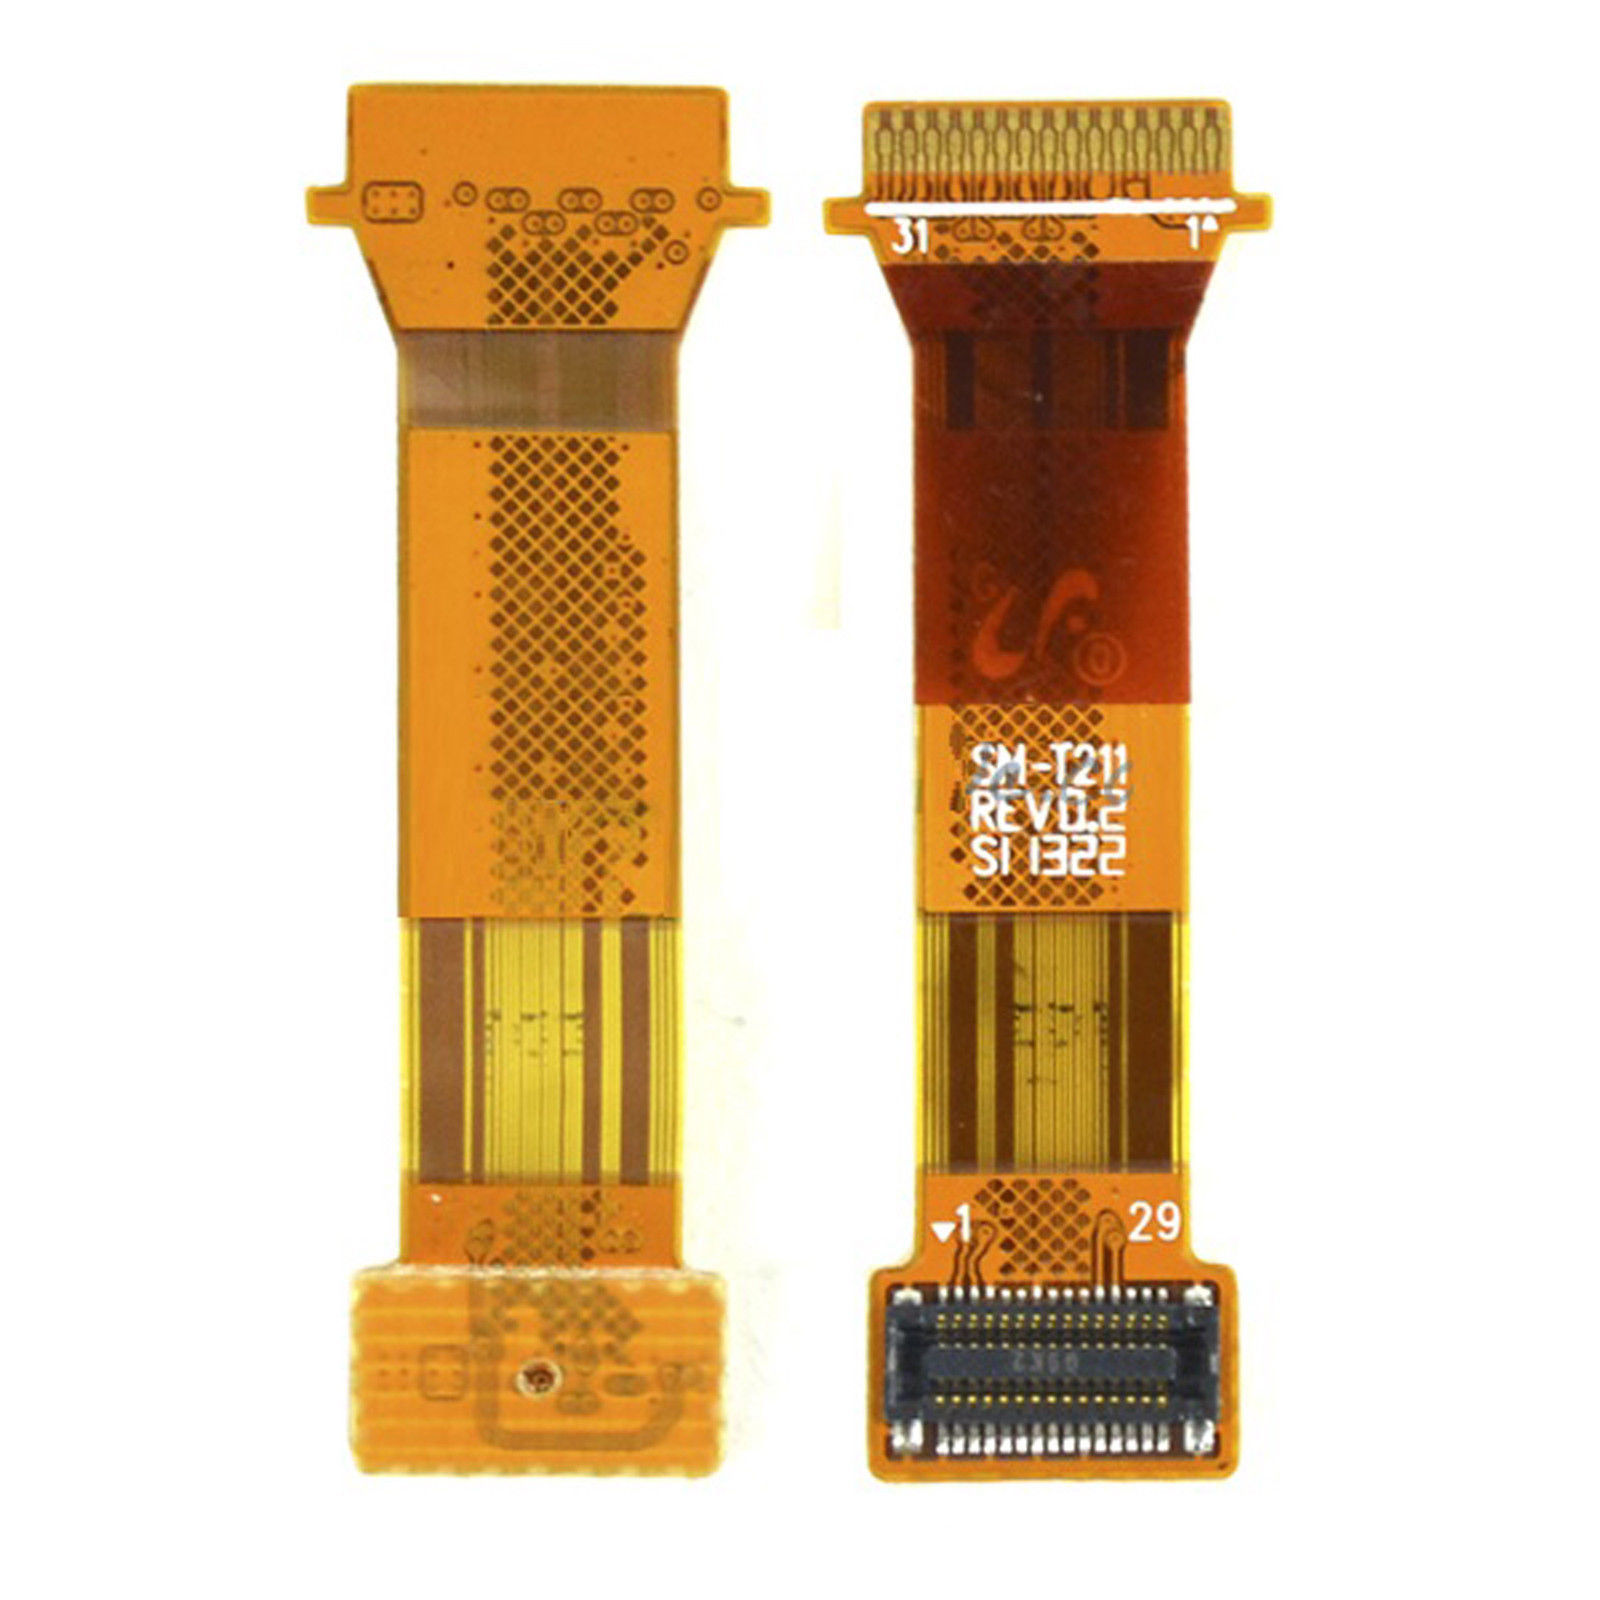 For Samsung Galaxy Tab 3 7.0 SM-T210 T211 P3200 P3210 LCD Connection Flex Cable Ribbon Replacement